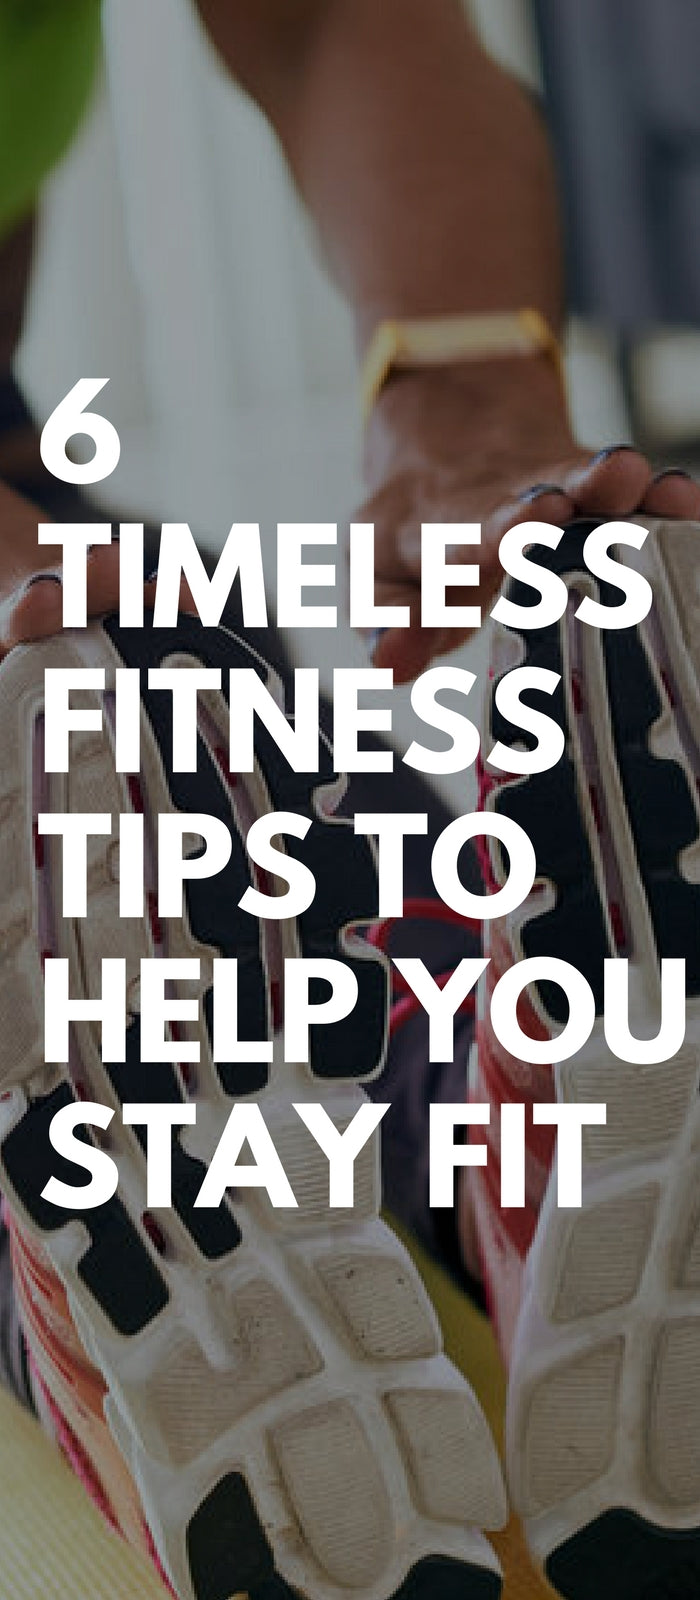 6 Timeless Fitness Tips To Help You Stay Fit